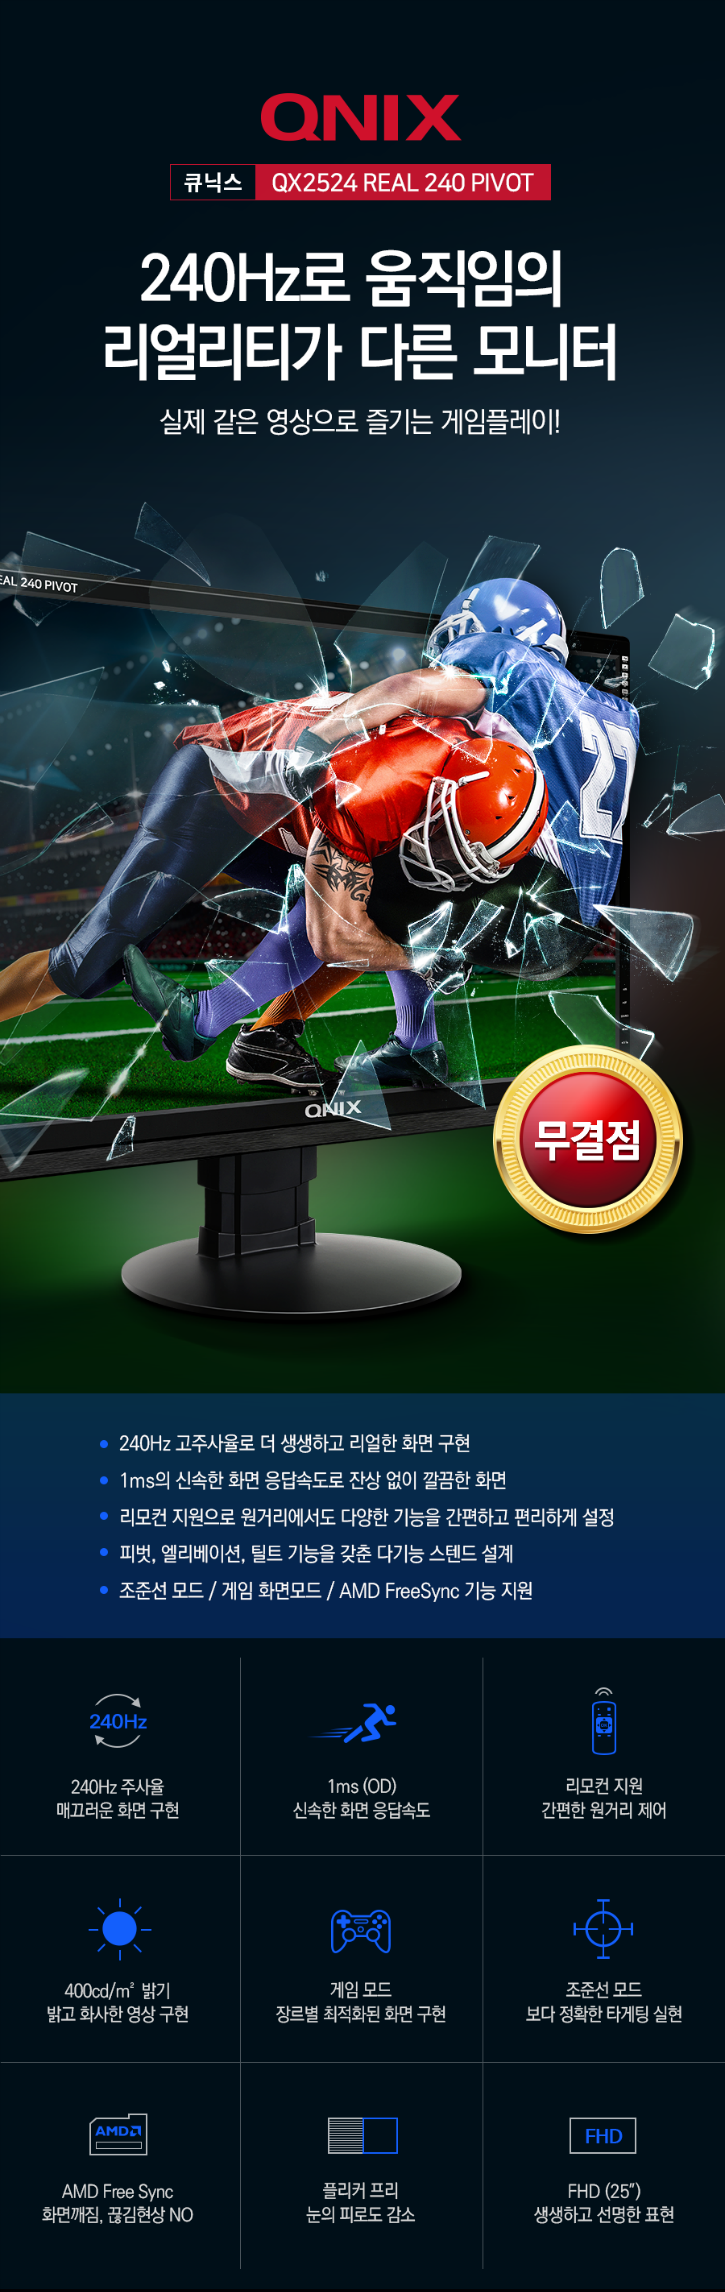 QX2544 REAL 240 PIVOT-DB완료(무결점)-1-1.png